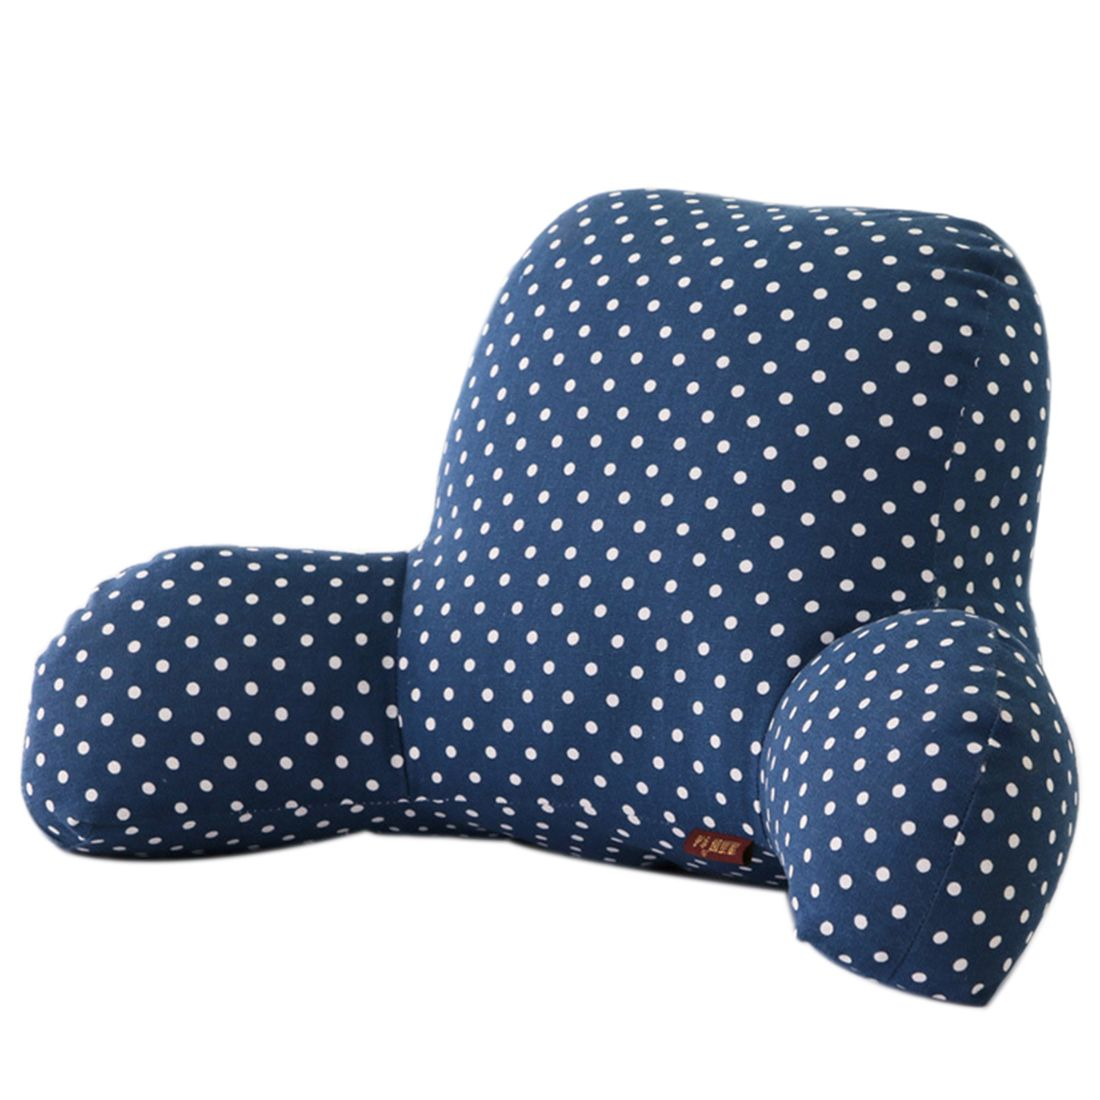 Hipsteen office seat pillow cotton u linen lumbar waist pillow pad